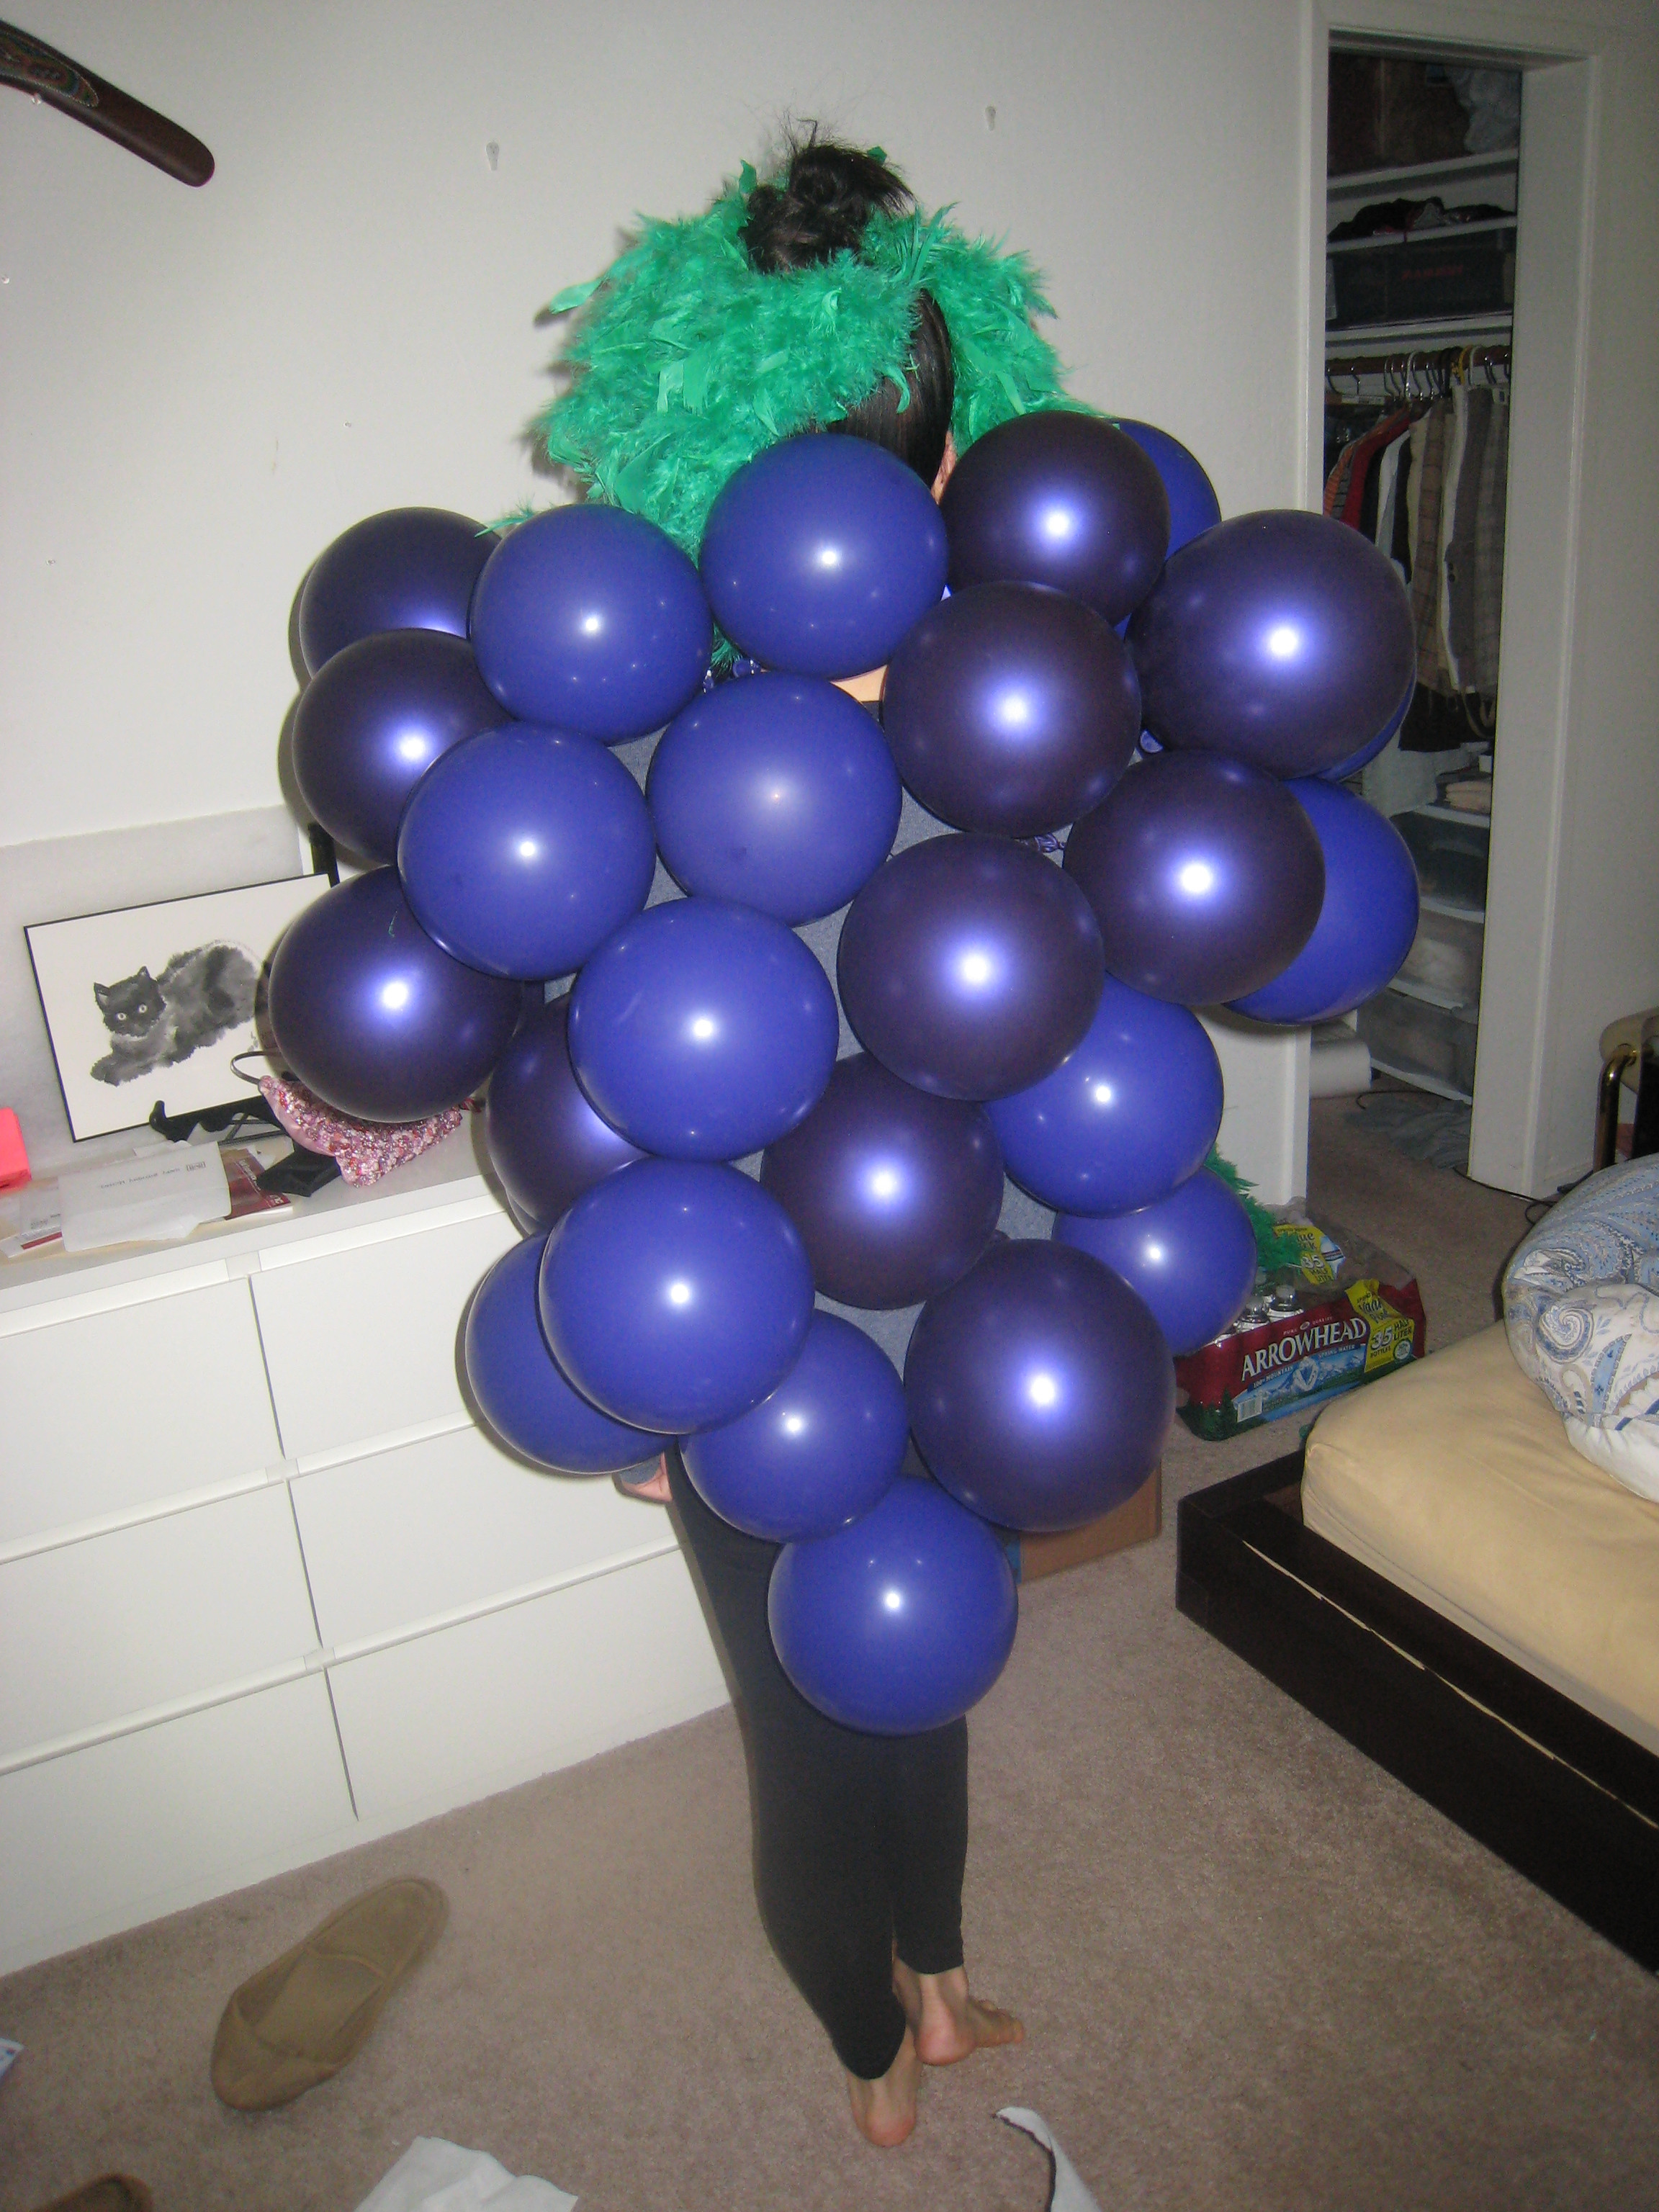 Best ideas about DIY Grapes Costume . Save or Pin 301 Moved Permanently Now.